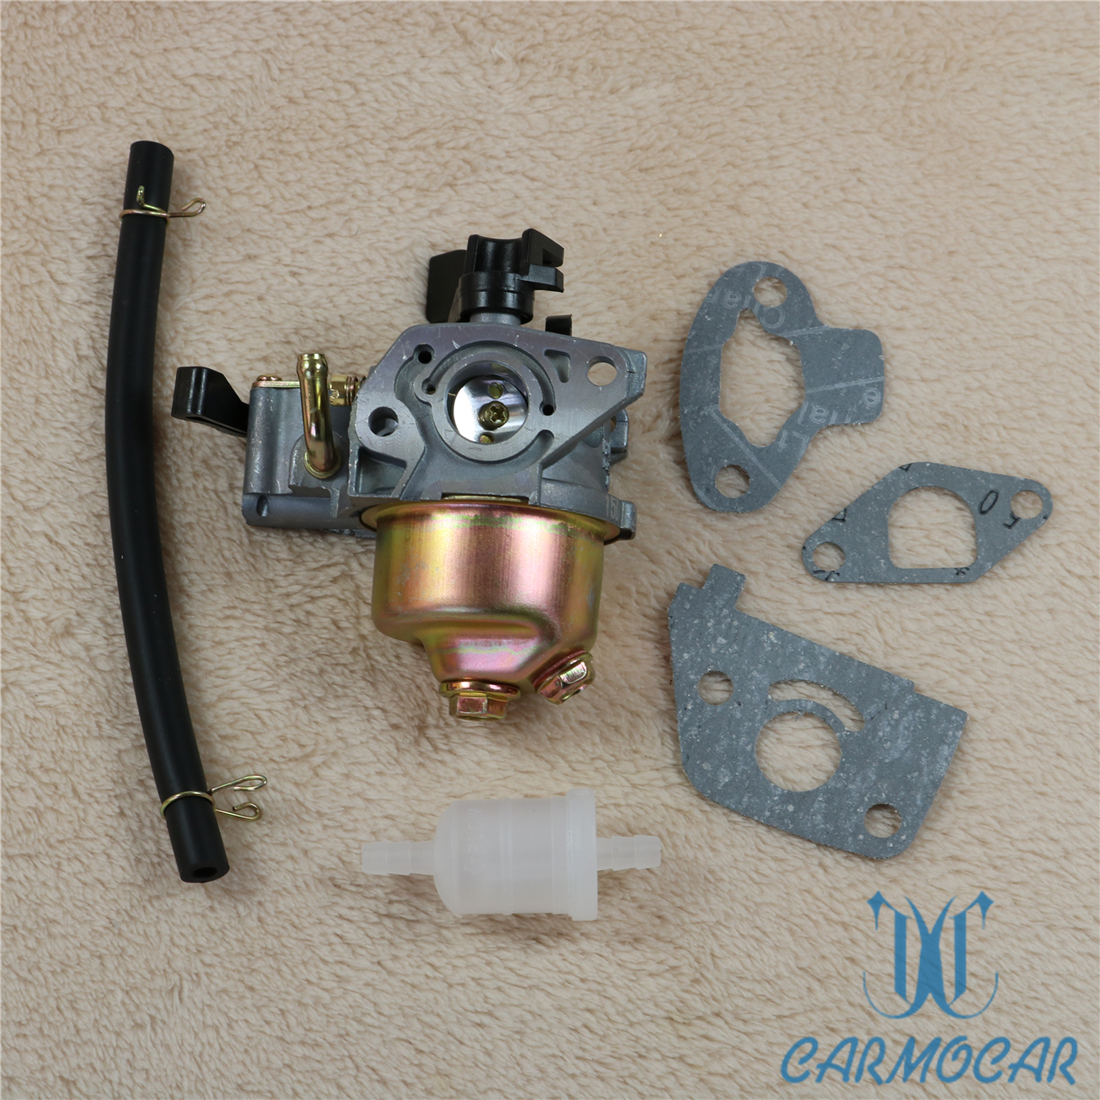 hight resolution of details about 16100 z0d 003 carburetor fit honda gx100 2 8hp 3hp replace carb gasket filter